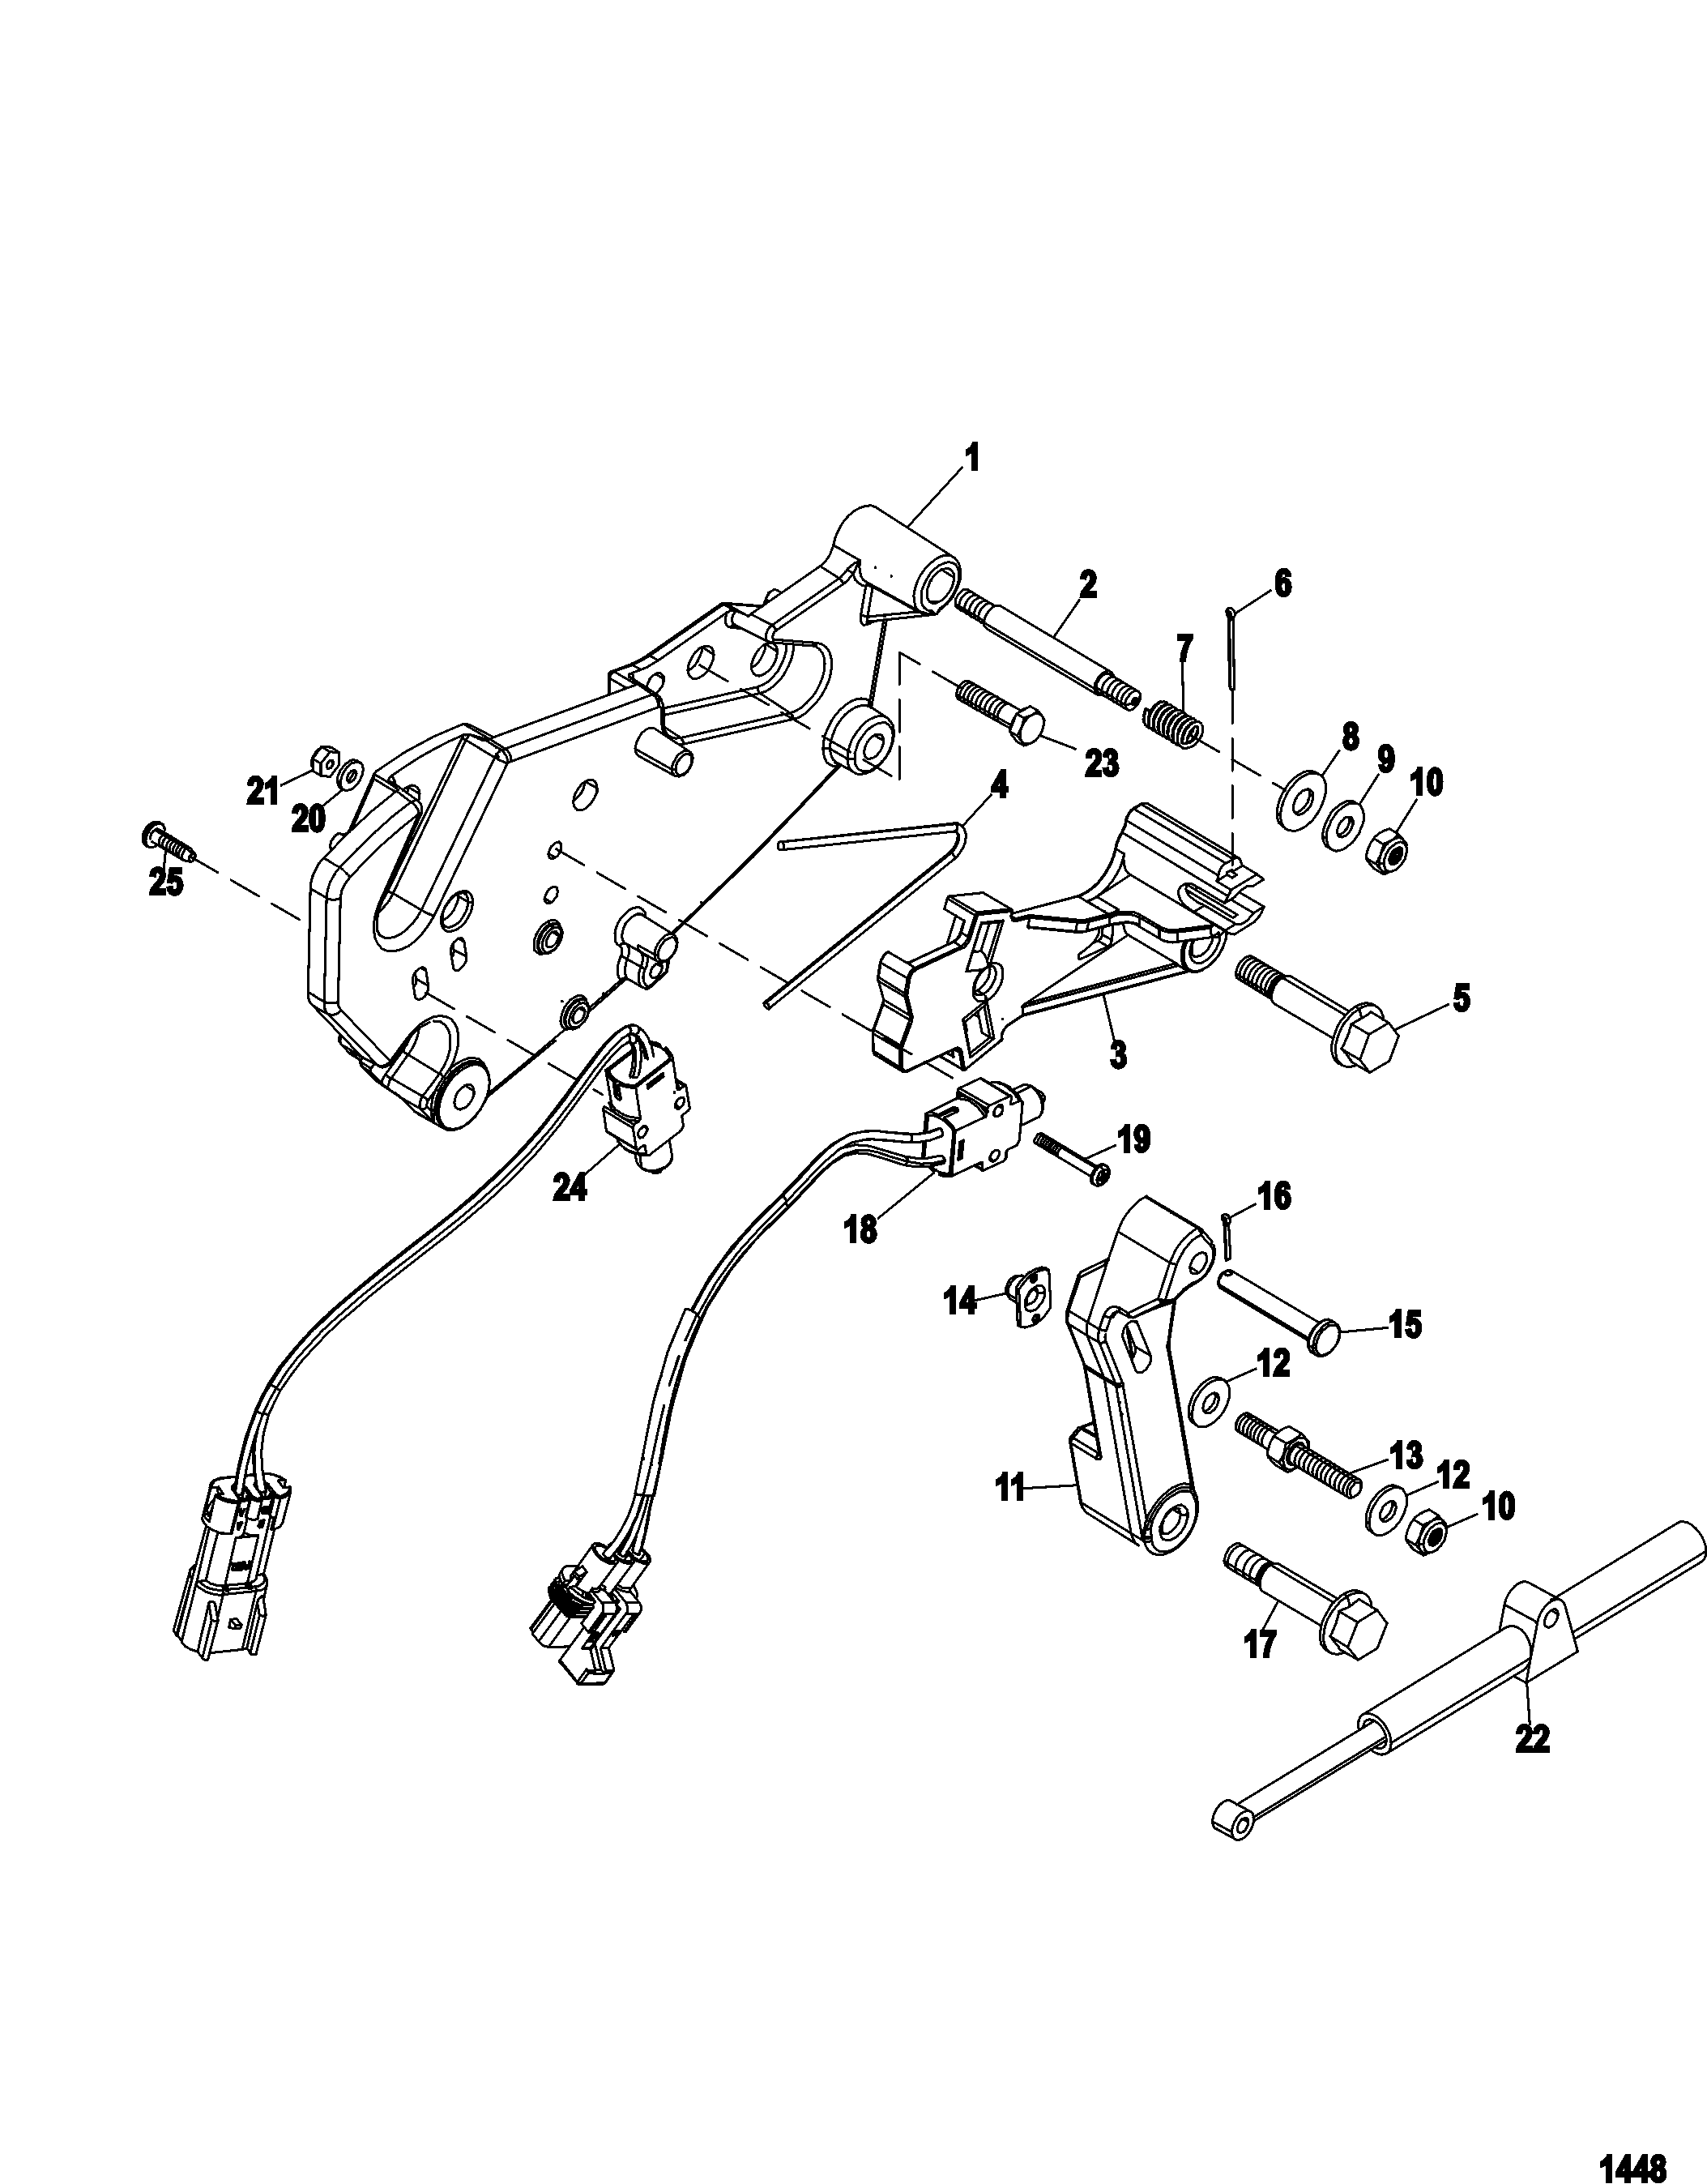 Shift Bracket Alpha Engines FOR MERCRUISER 4.3L MPI ALPHA